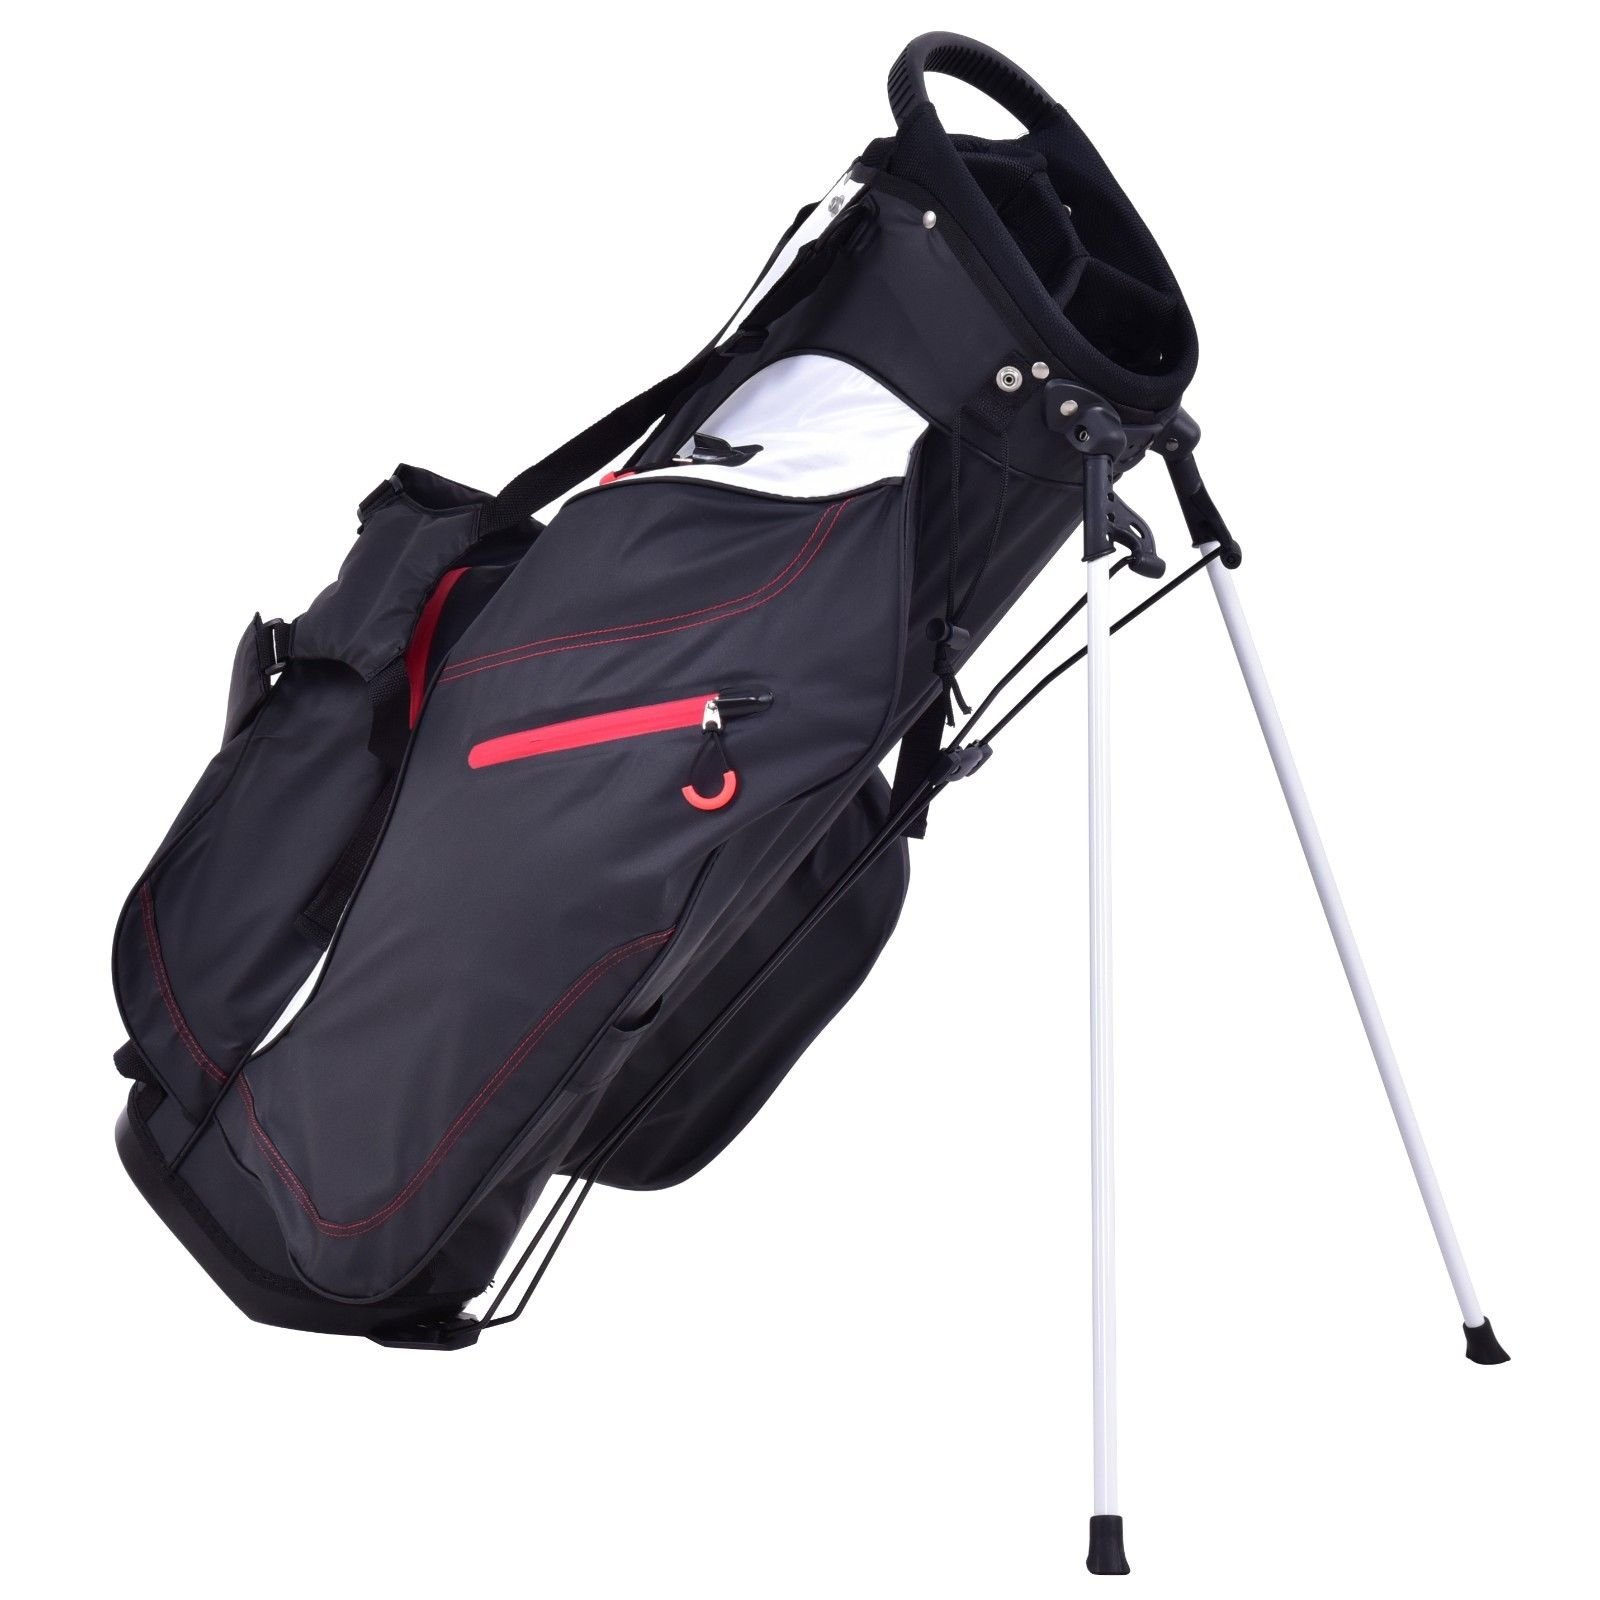 New 8.5'' Golf Stand Cart Bag Club 5 Way Divider Carry Organizer Pockets Storage by MTN Gearsmith